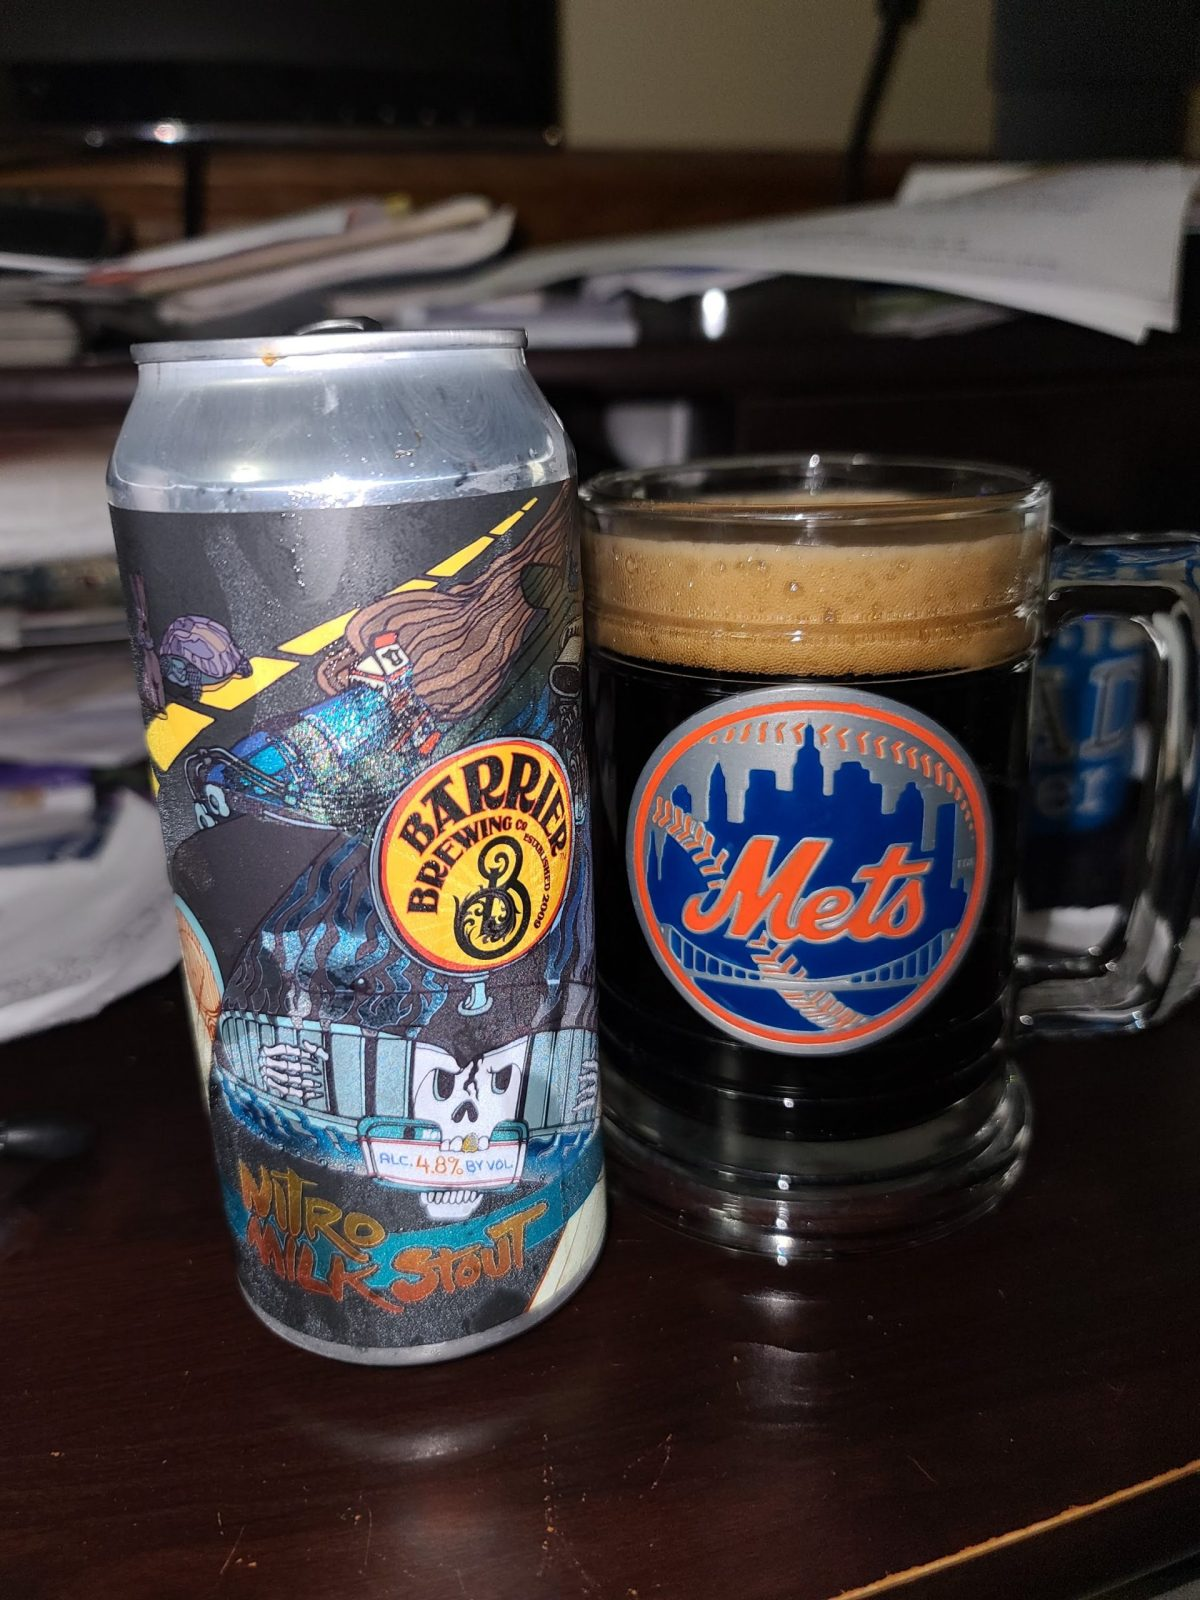 Beatiful fluffy tan head of foam in a Mets clear mug with ball logo on front, next to the Barrier can featured can art of the hood of a car